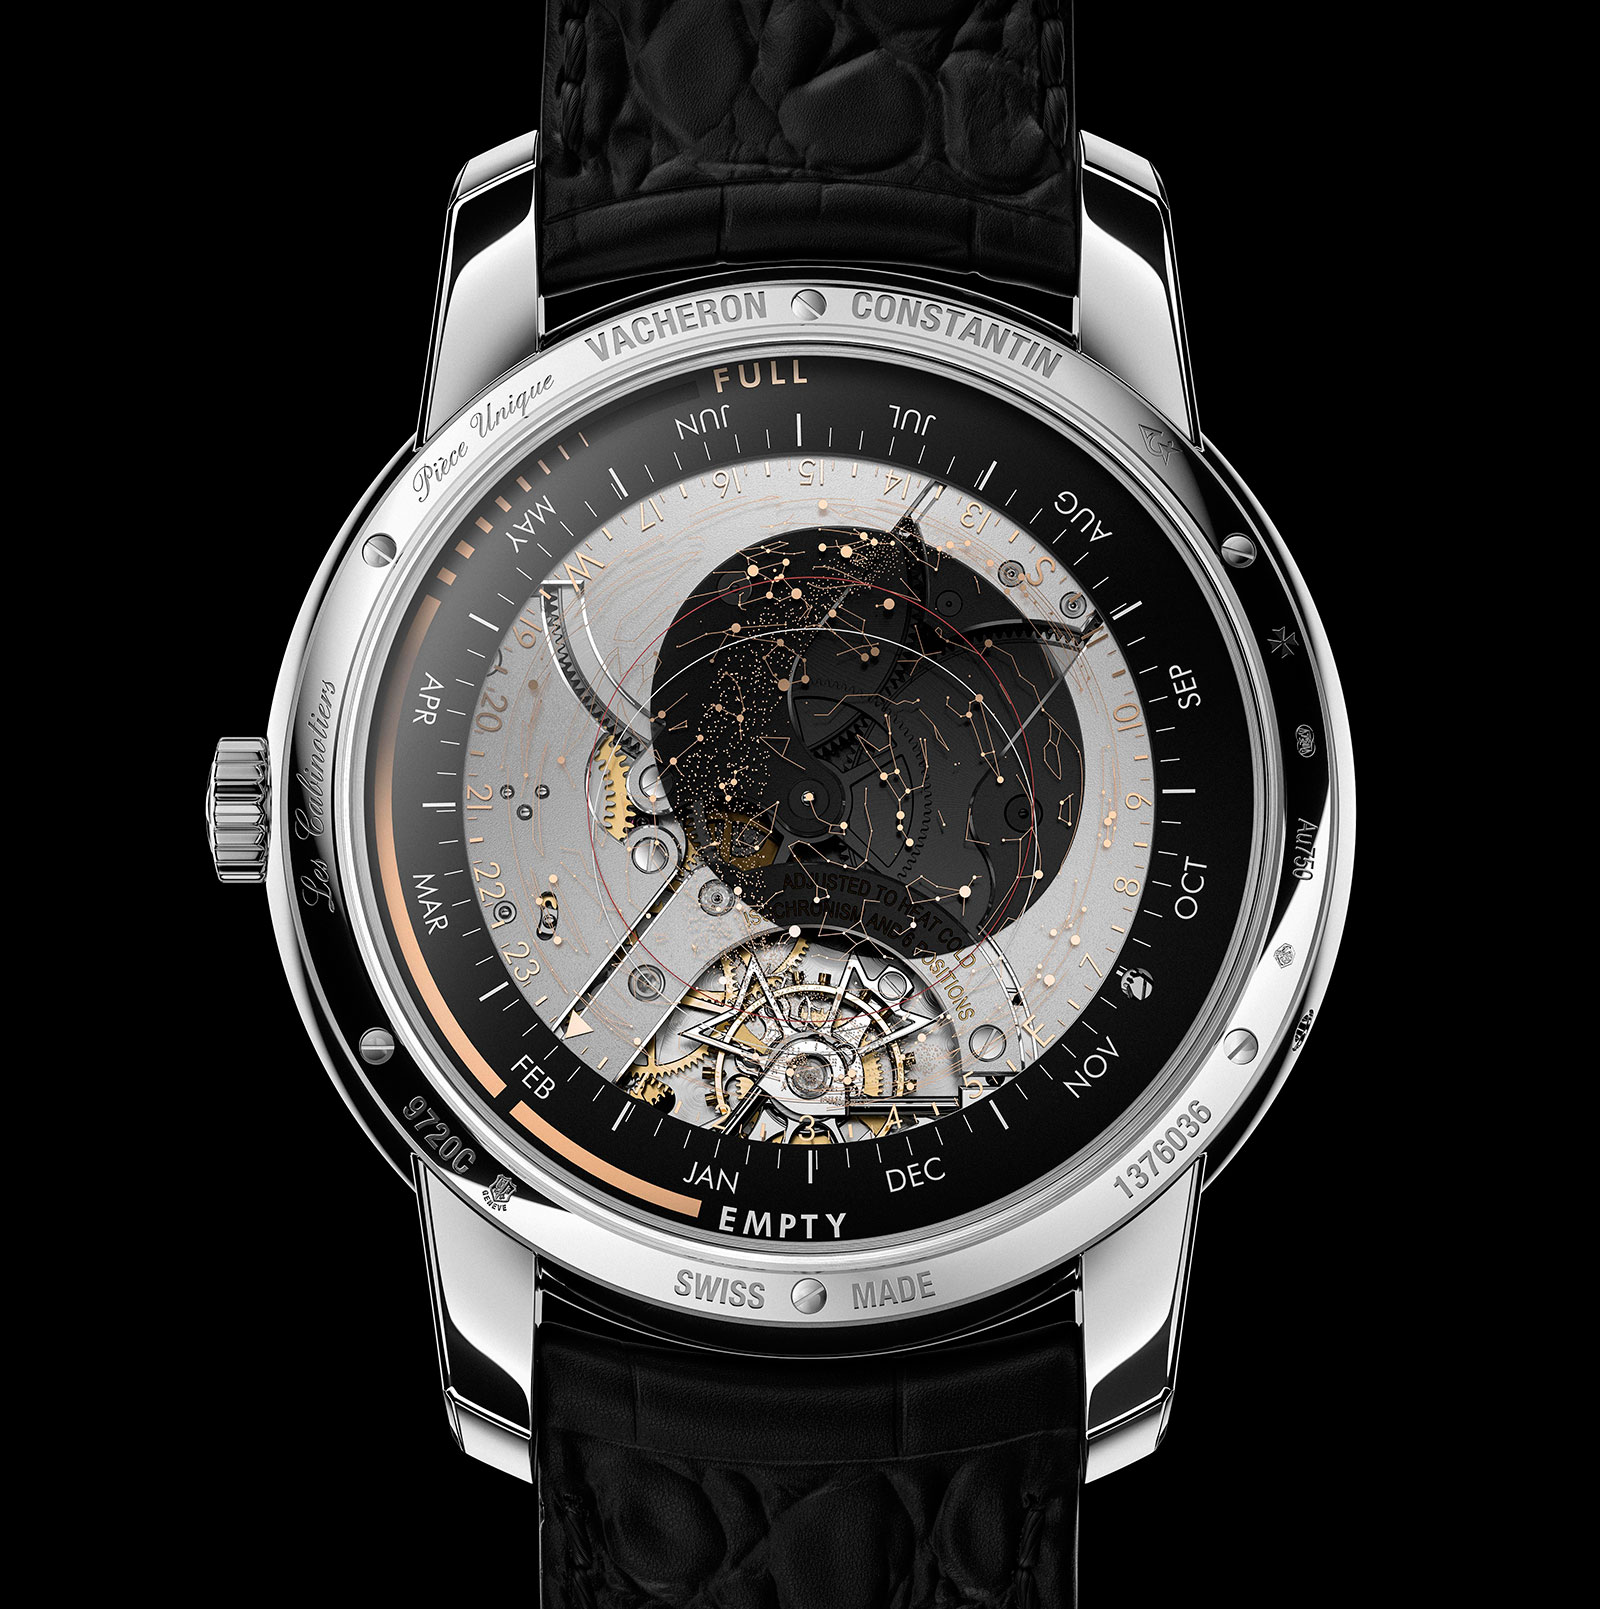 Vacheron Constantin Celestia Astronomical Grand Complication 3600-6